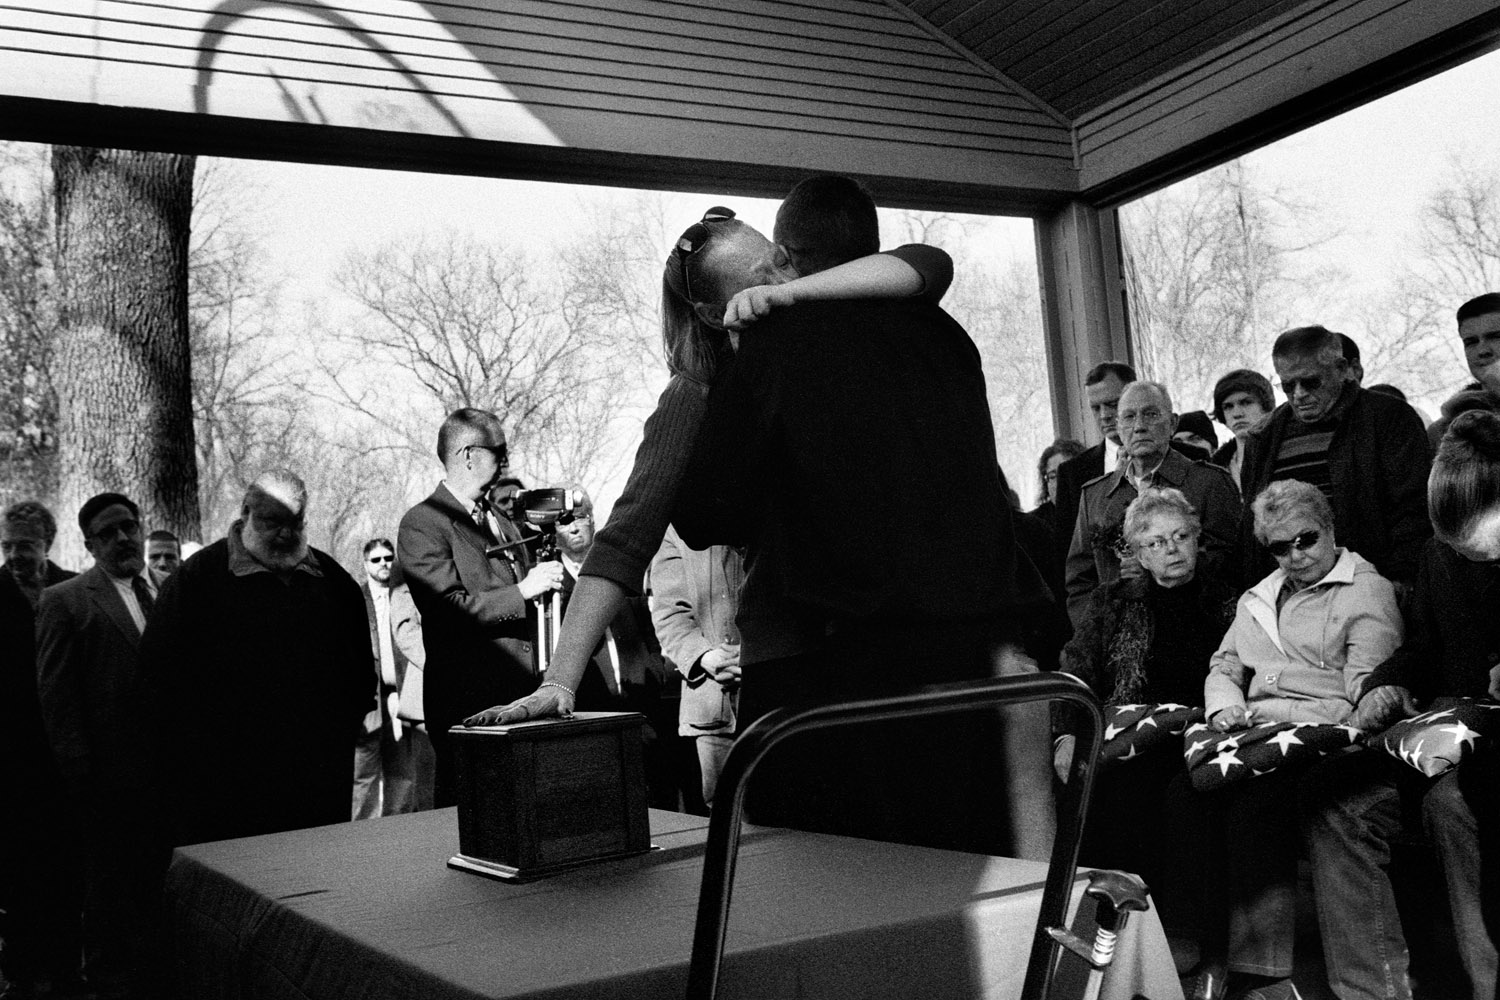 Tess Terpstra and Jay Terpstra embrace at Specialist Terpstra's funeral.